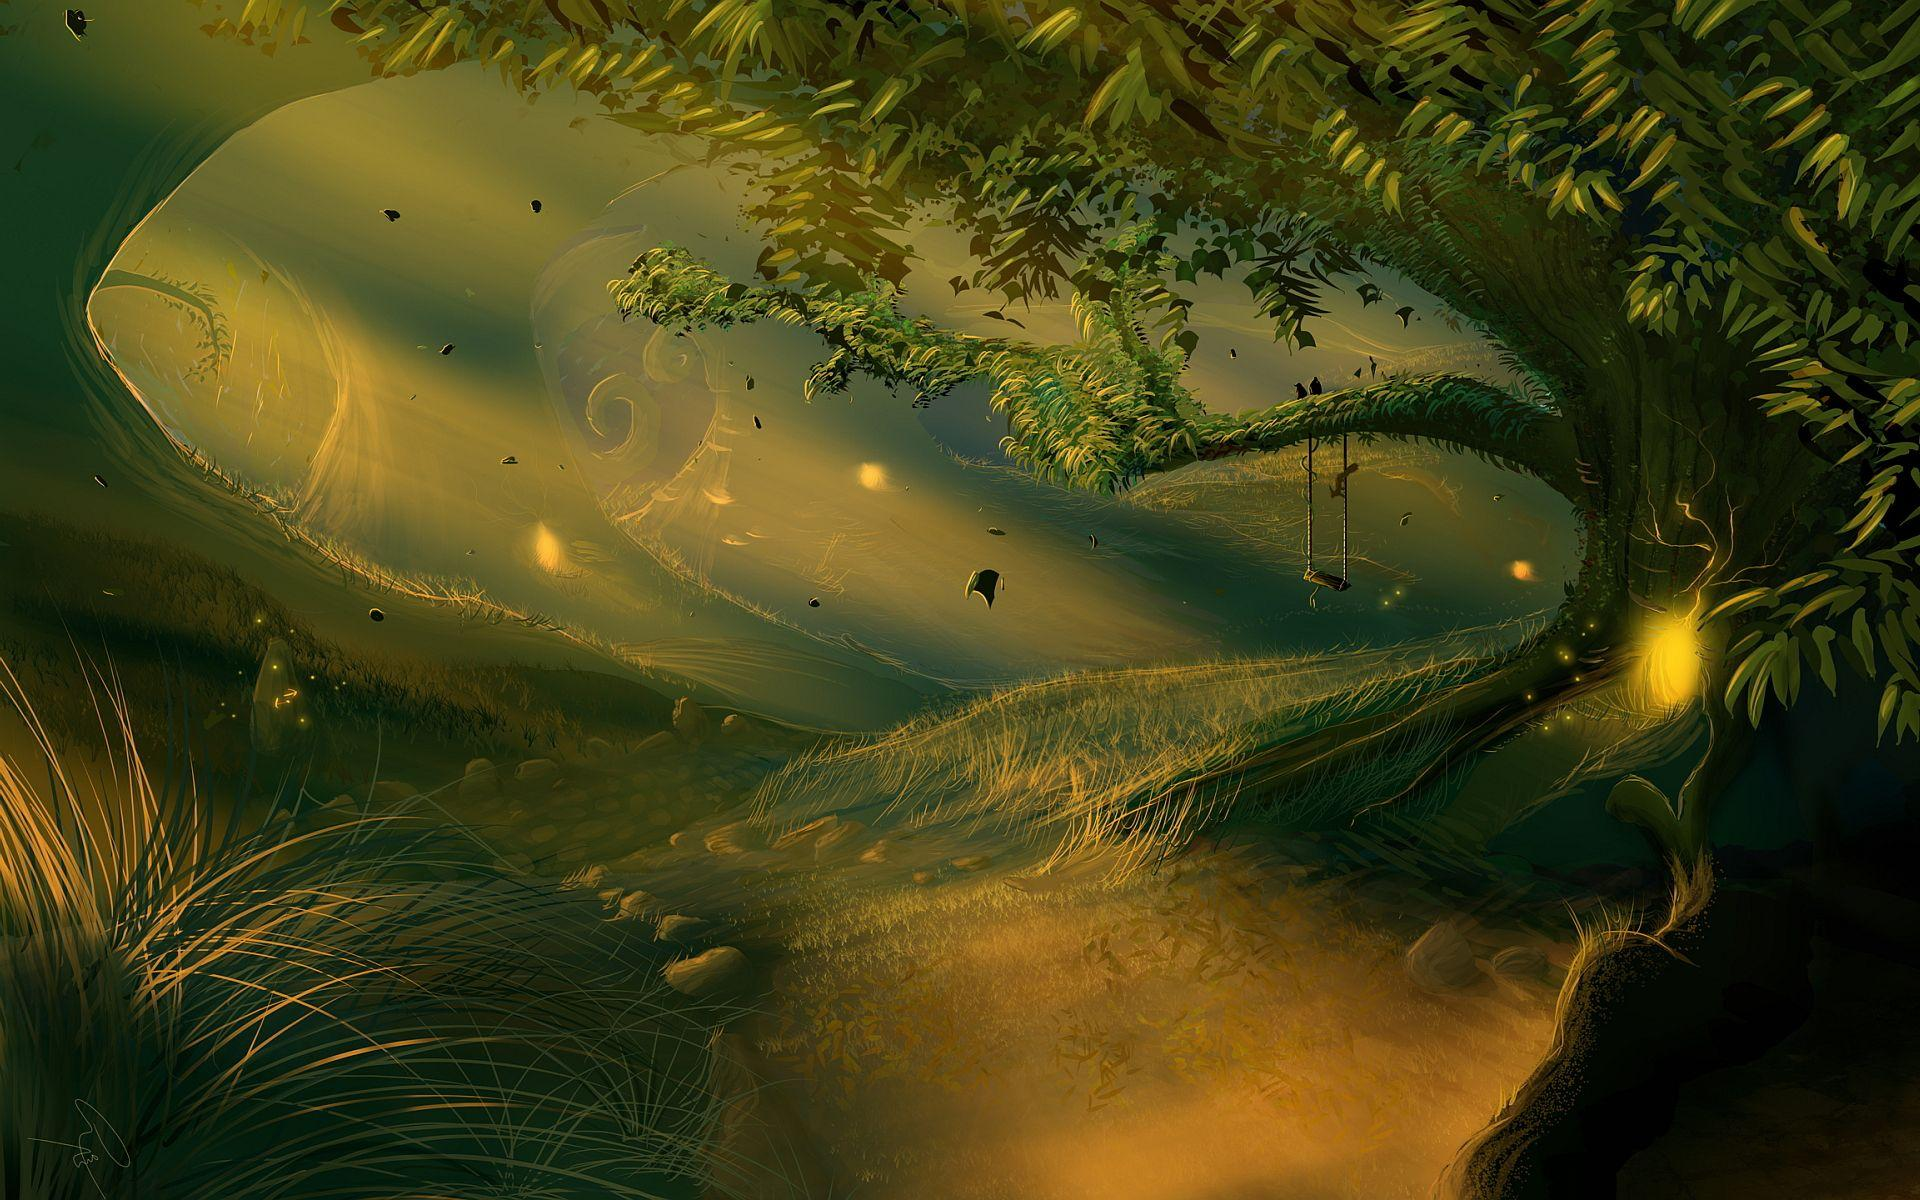 Magic Forest Wallpapers - Wallpaper Cave